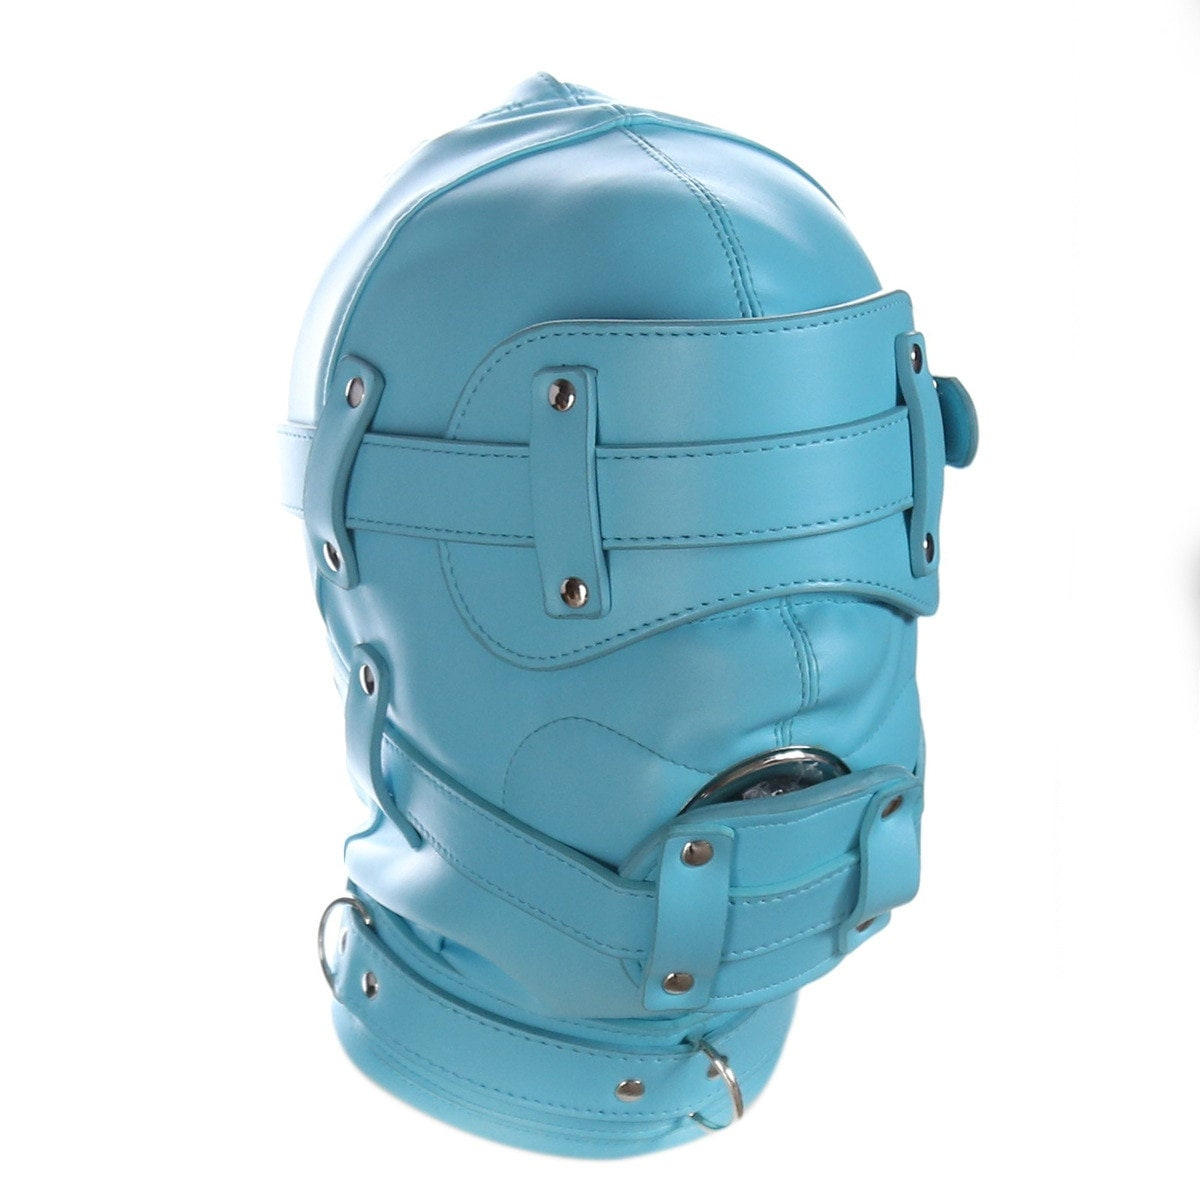 Sensory Deprivation Bondage Hood With Open Mouth Penis Gag available in 3 colours